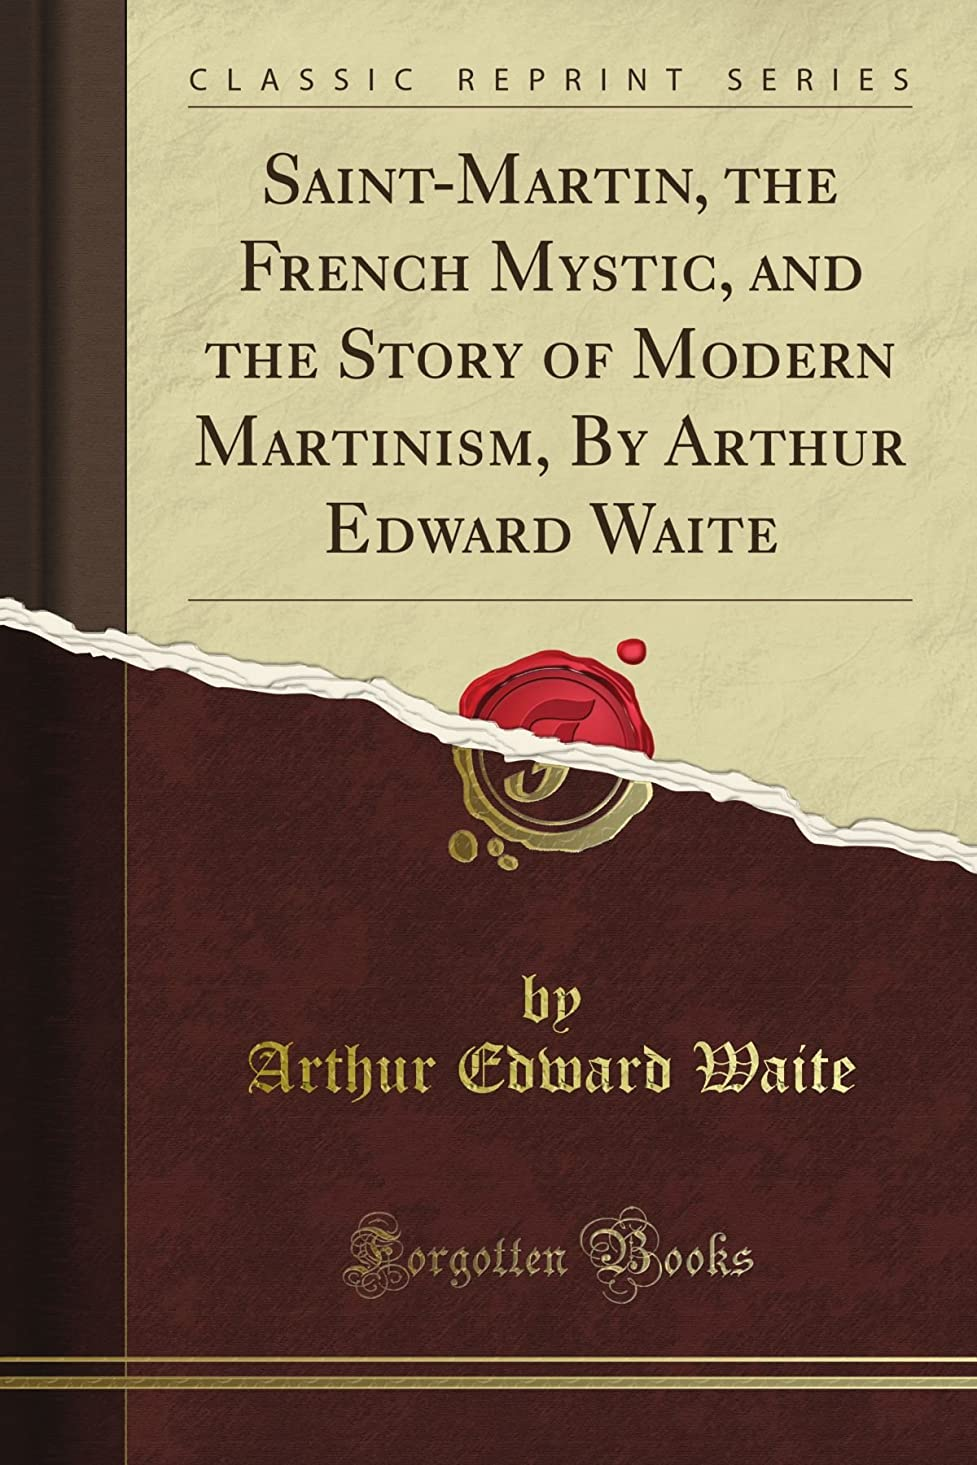 ノート今日グローSaint-Martin, the French Mystic, and the Story of Modern Martinism, By Arthur Edward Waite (Classic Reprint)